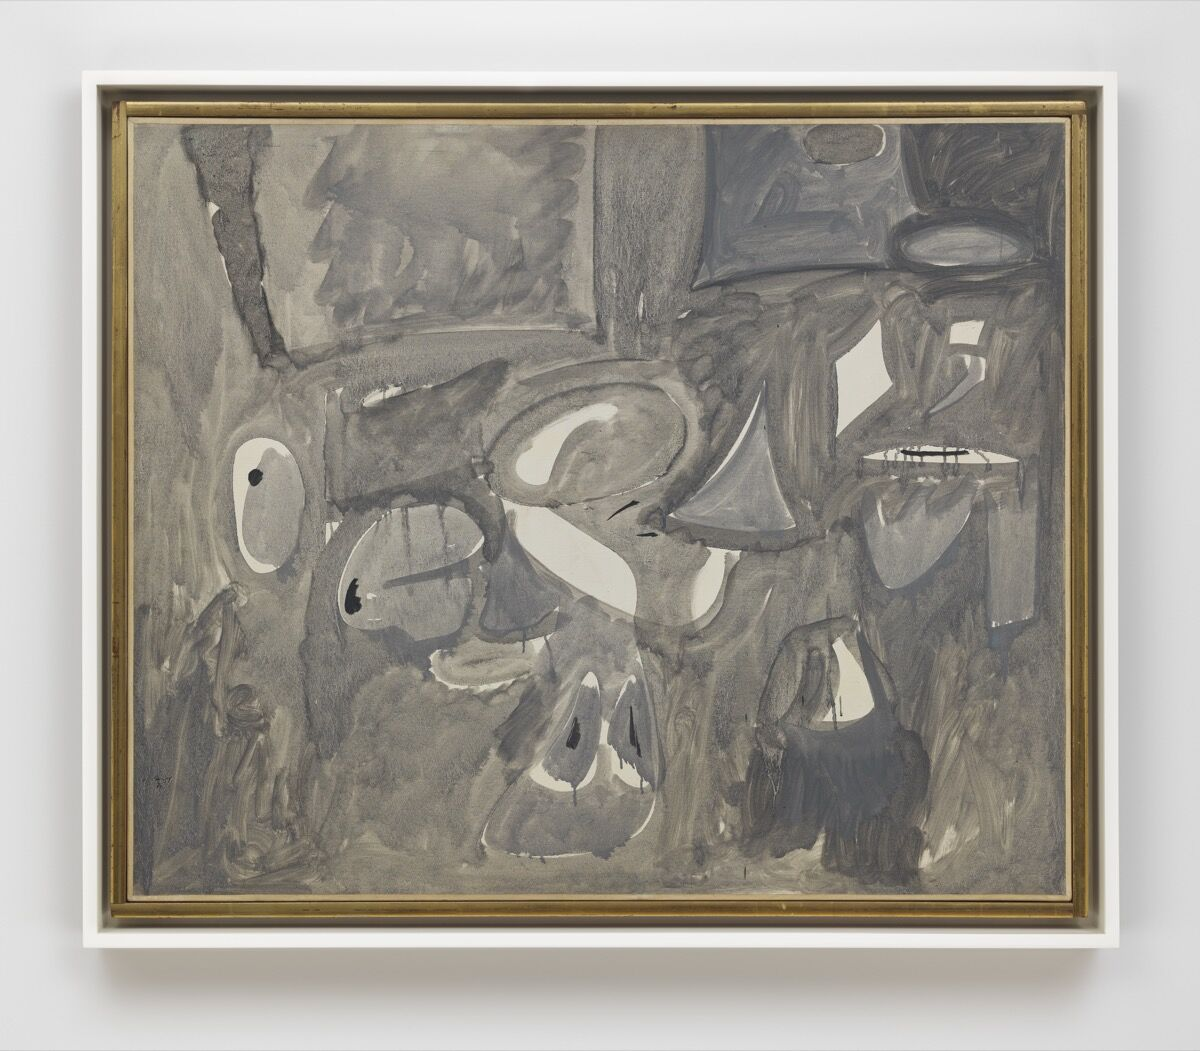 Arshile Gorky, The Opaque, 1947. Photo by Genevieve Hanson. © 2017 The Arshile Gorky Foundation / Artists Rights Society (ARS), New York. Courtesy of The Arshile Gorky Foundation and Hauser & Wirth.